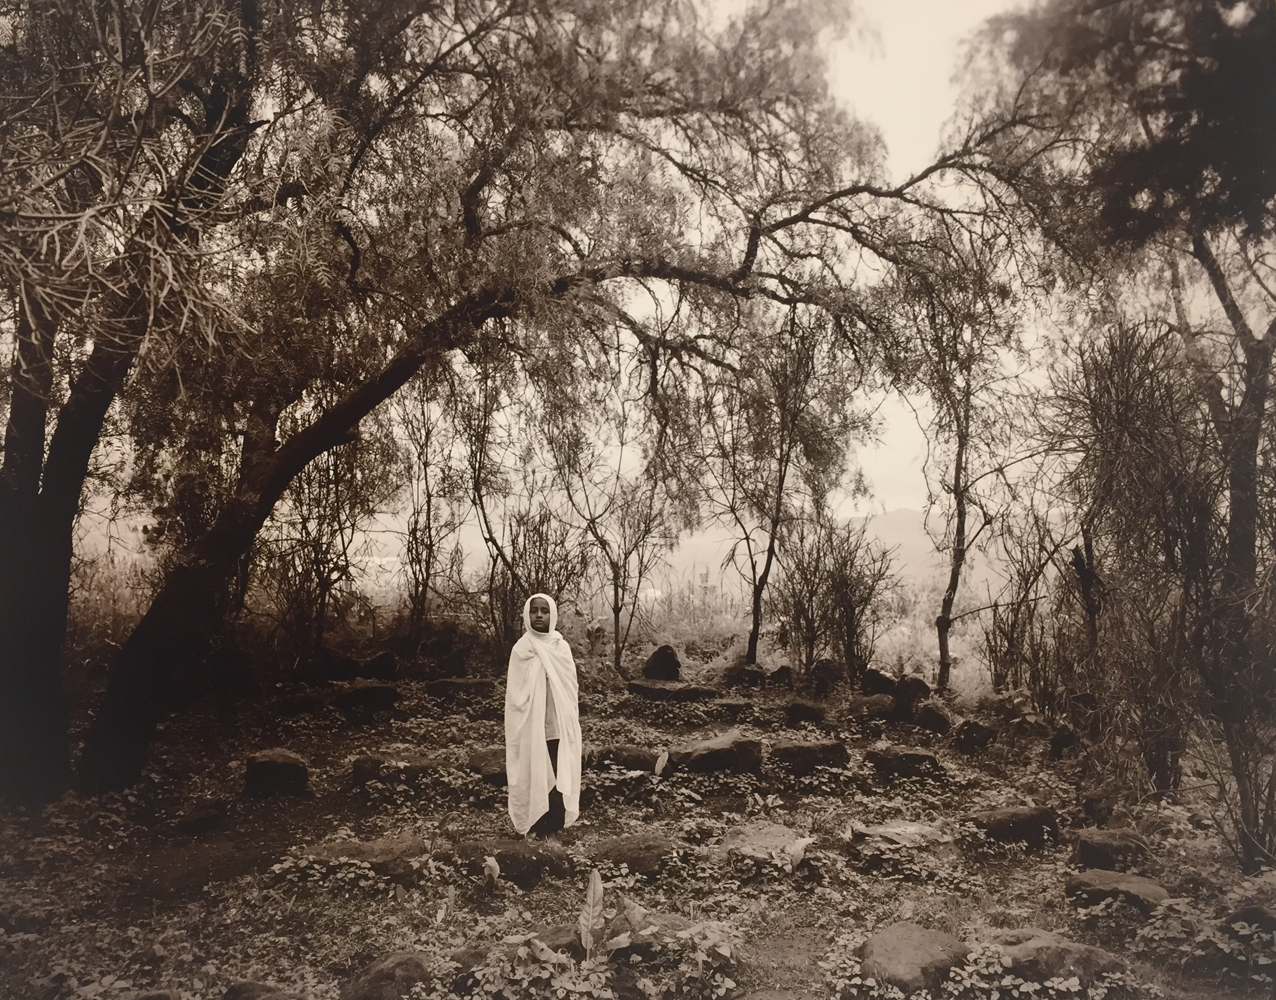 Linda Connor, Girl after Mass, Ethiopia, 2006, gold toned print, 8 x 10 inches